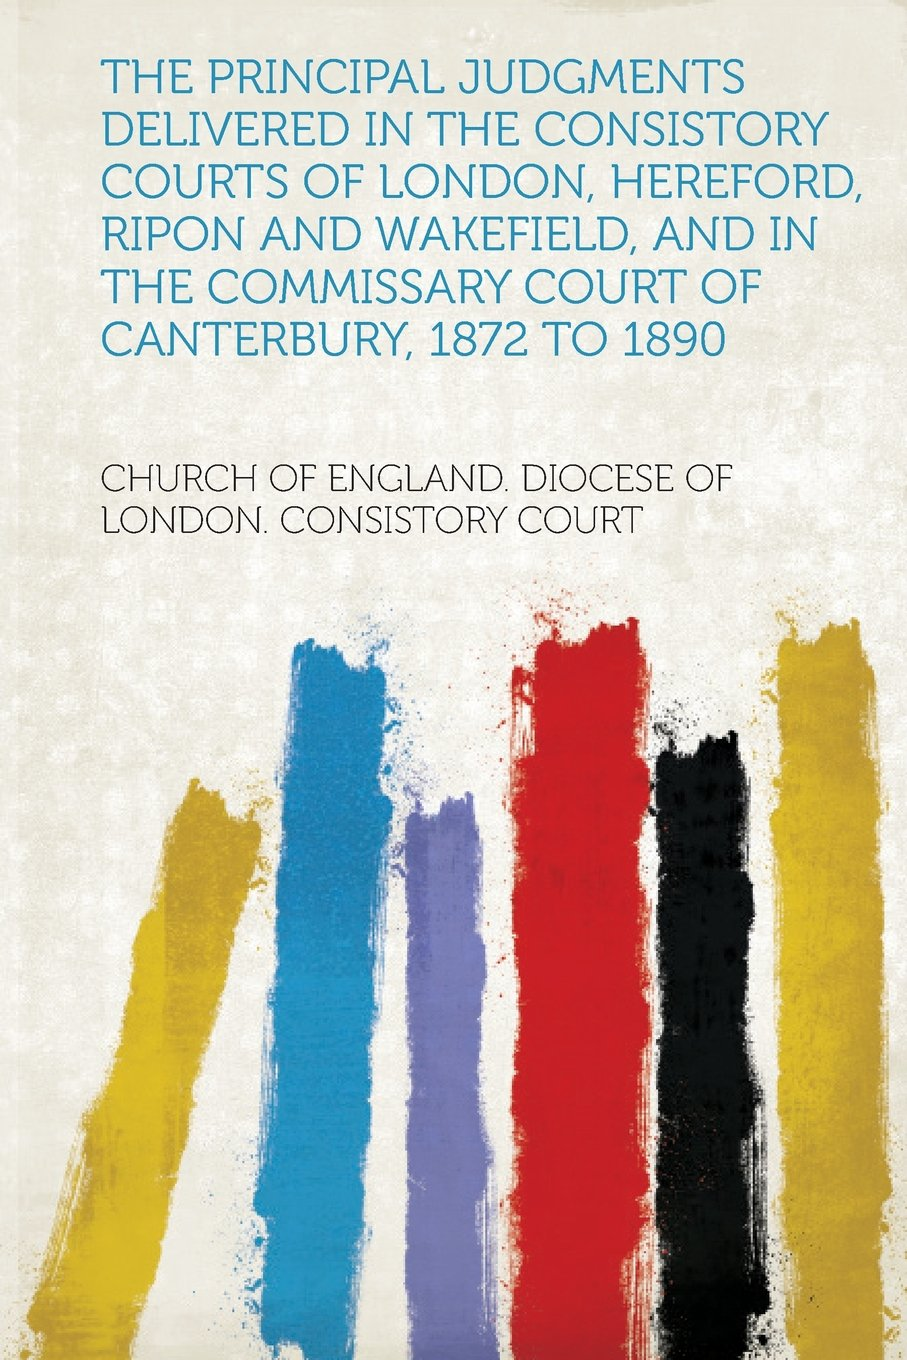 Read Online The Principal Judgments Delivered in the Consistory Courts of London, Hereford, Ripon and Wakefield, and in the Commissary Court of Canterbury, 1872 T pdf